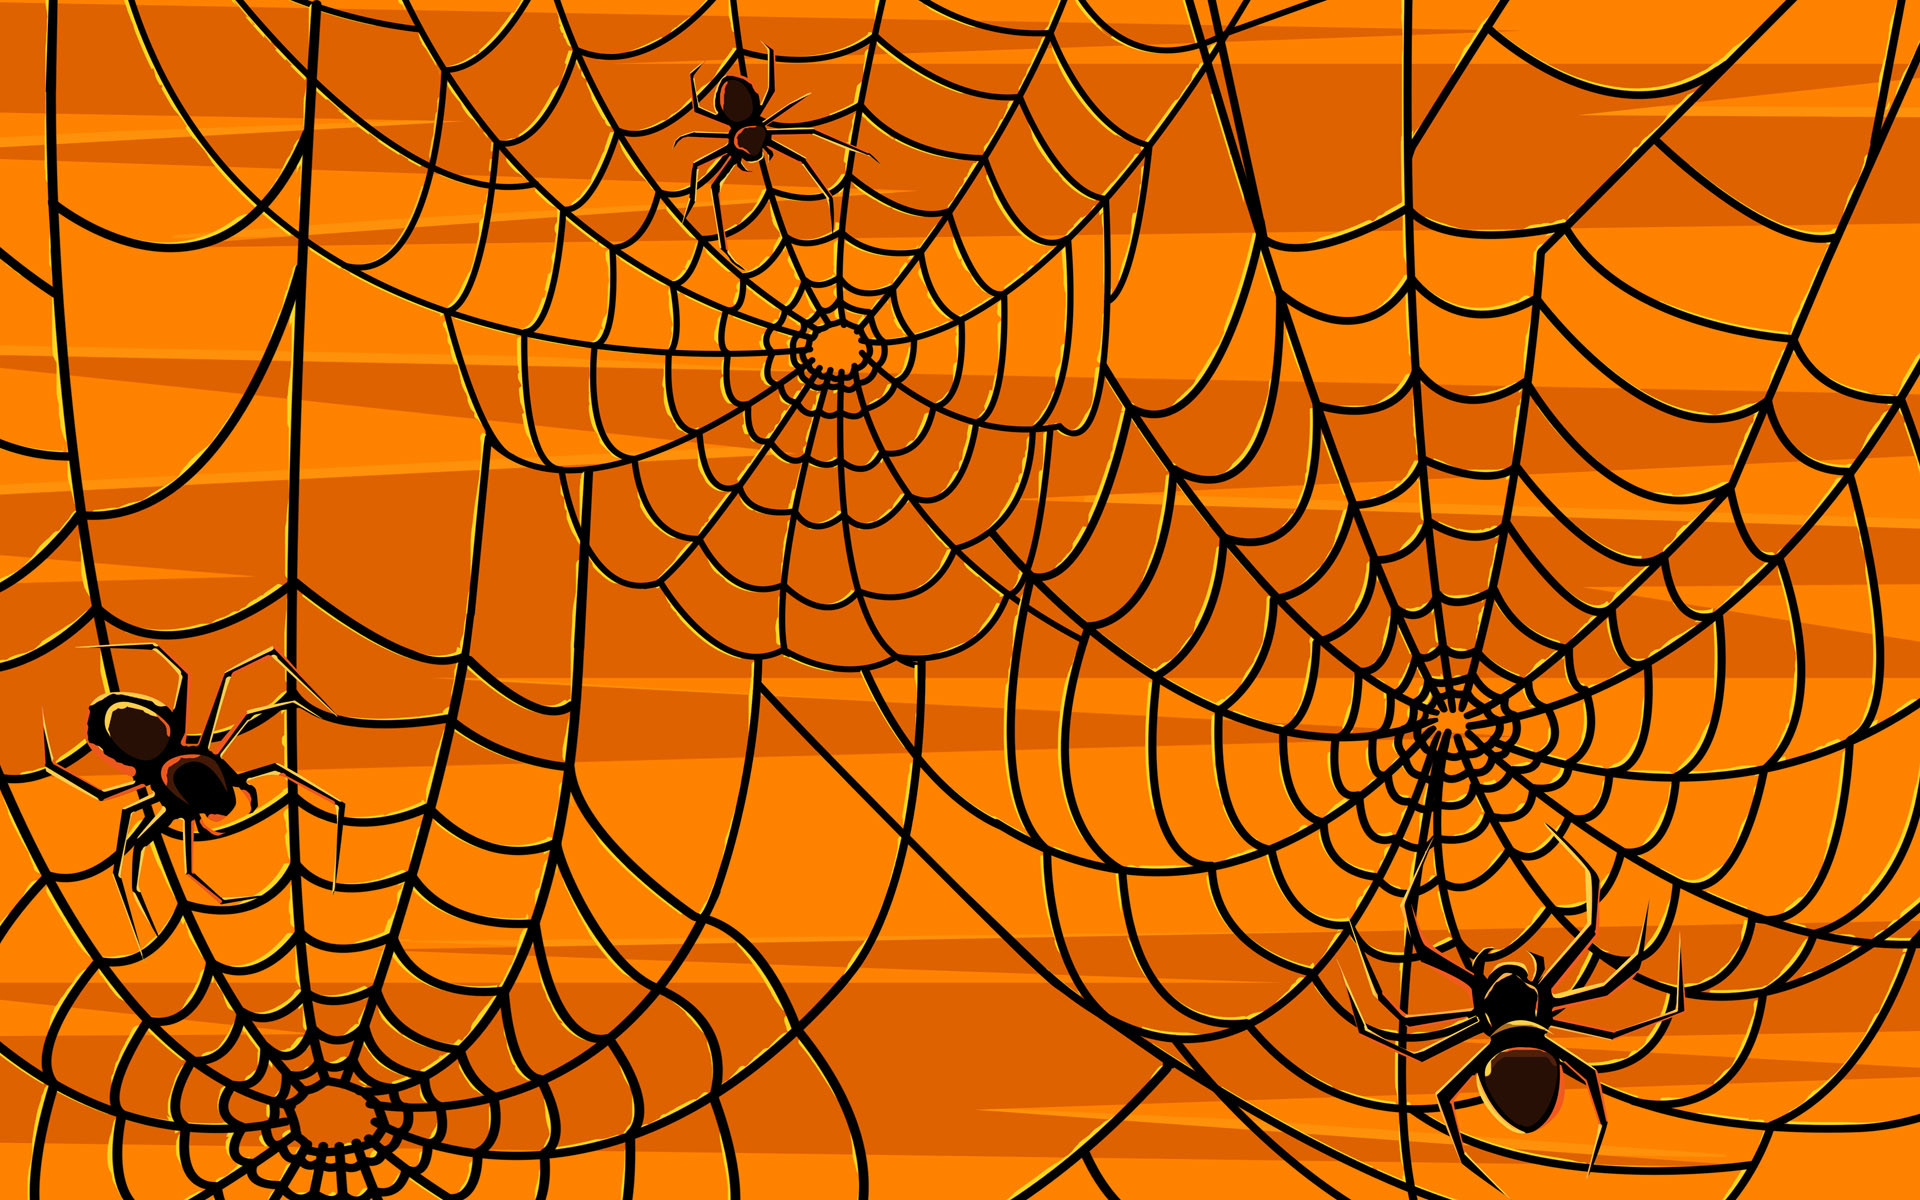 1920x1200 Scary-Halloween-2012-Spiders-HD-Wallpaper